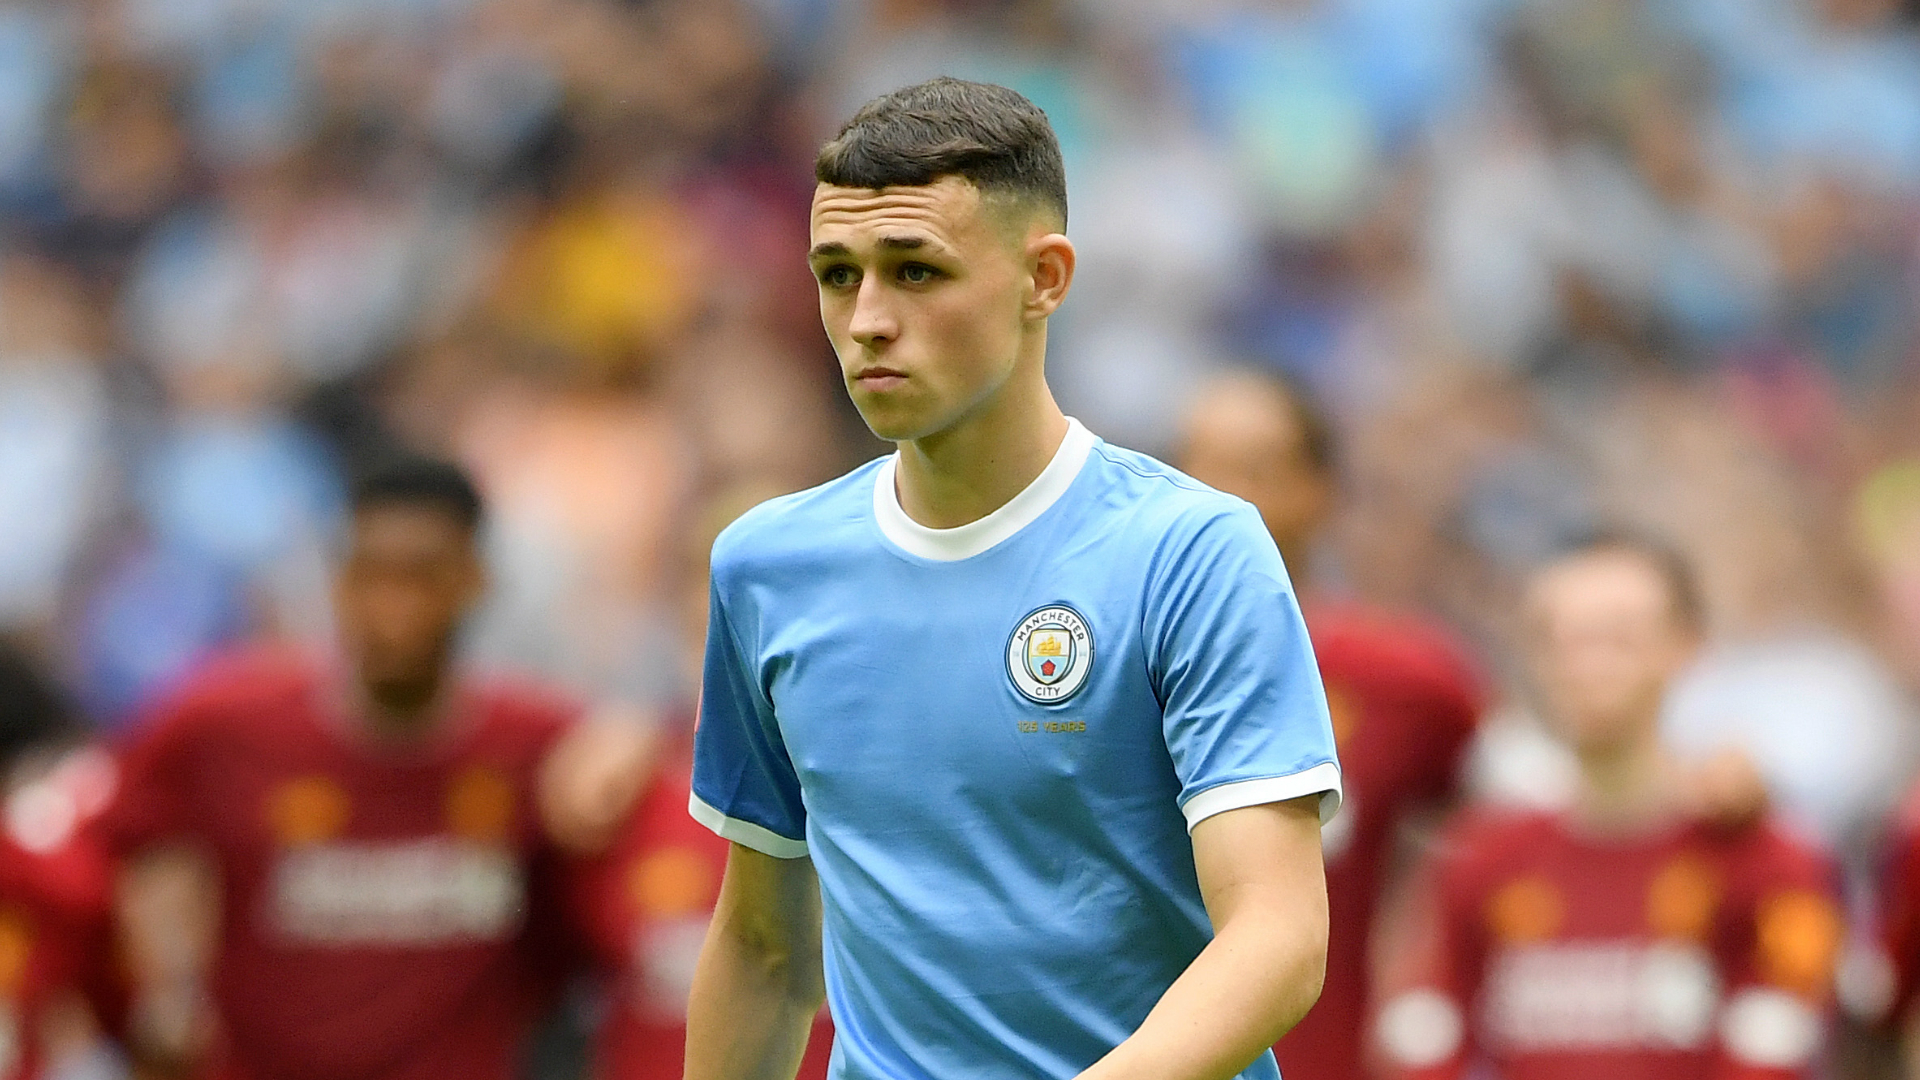 Foden to be among world's best within two years - Bernardo Silva